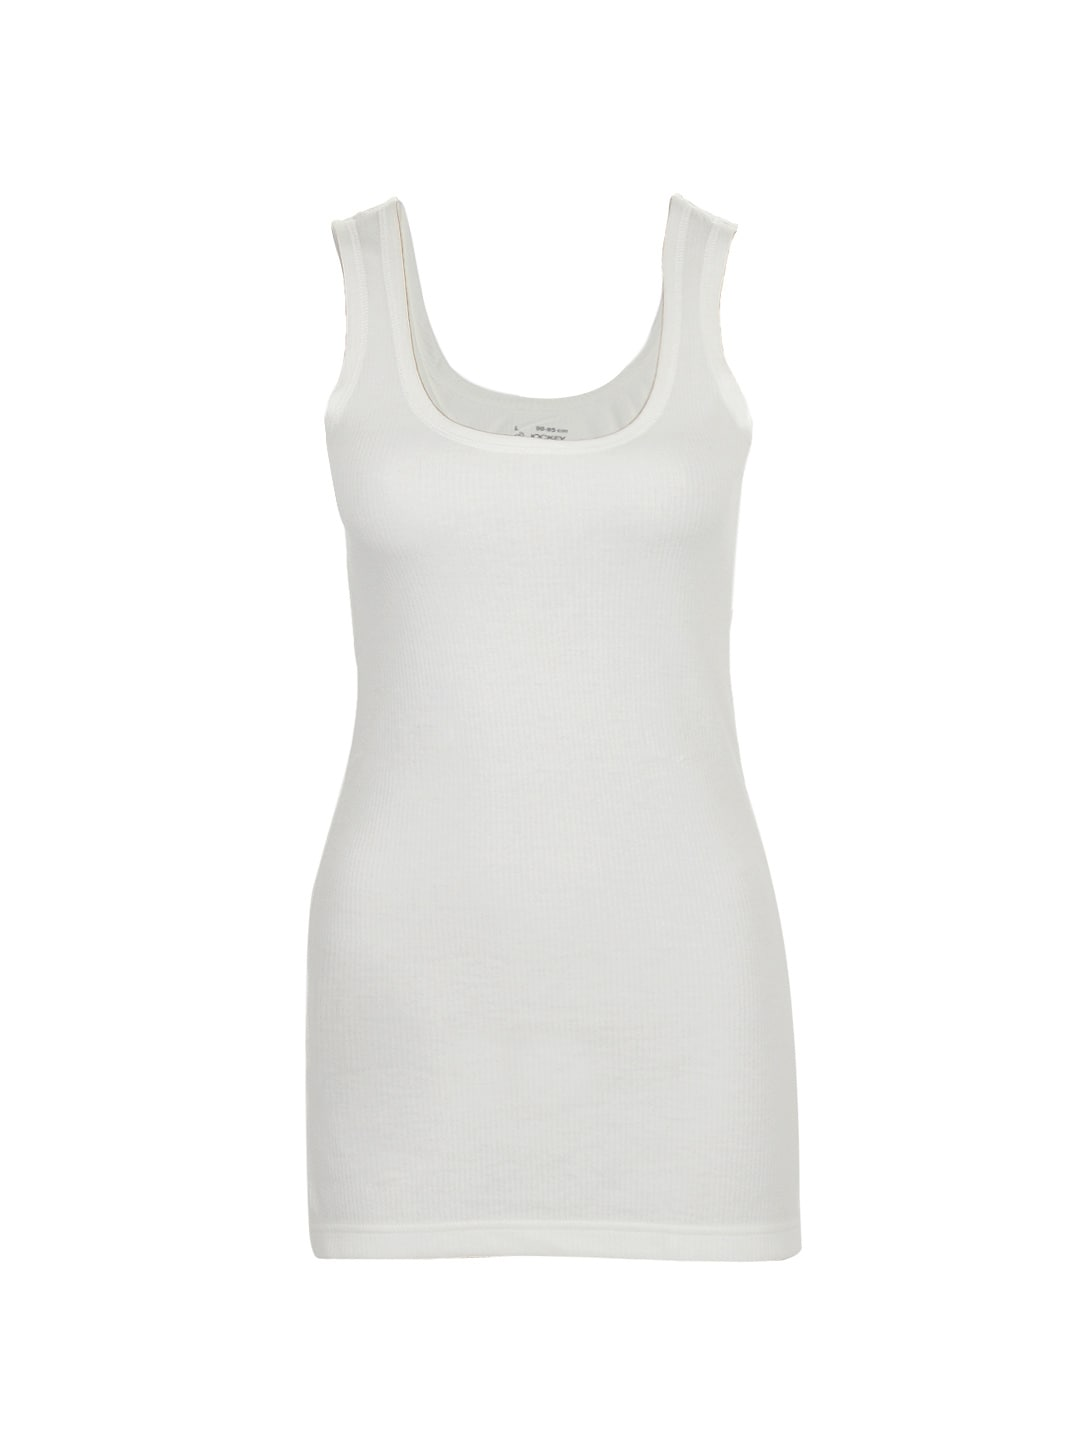 Jockey Women Cream Thermal Camisole